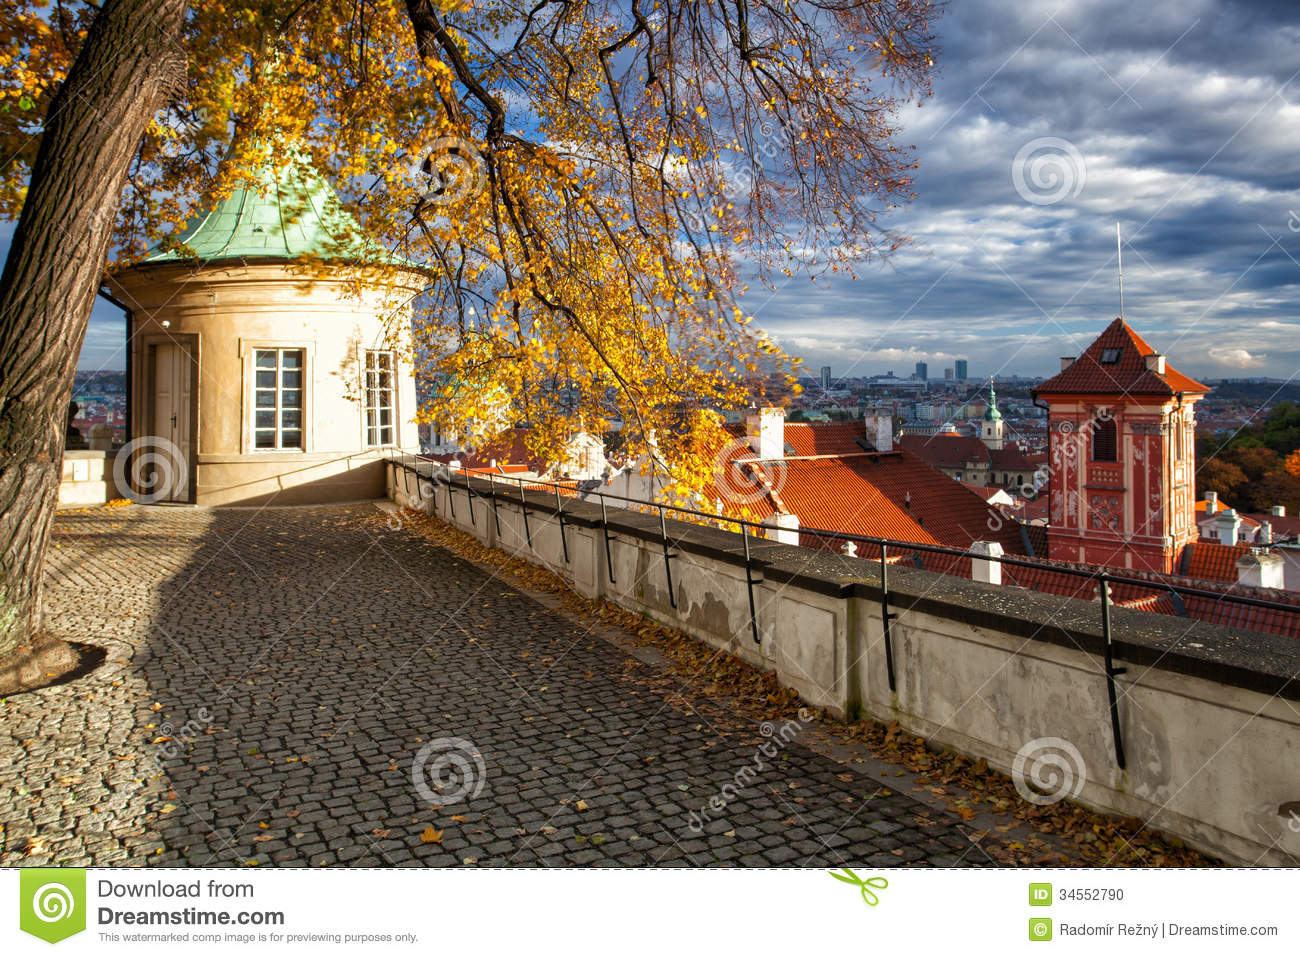 Garden Of Paradise In Prague In Czech Republic Stock Photo - Image ...